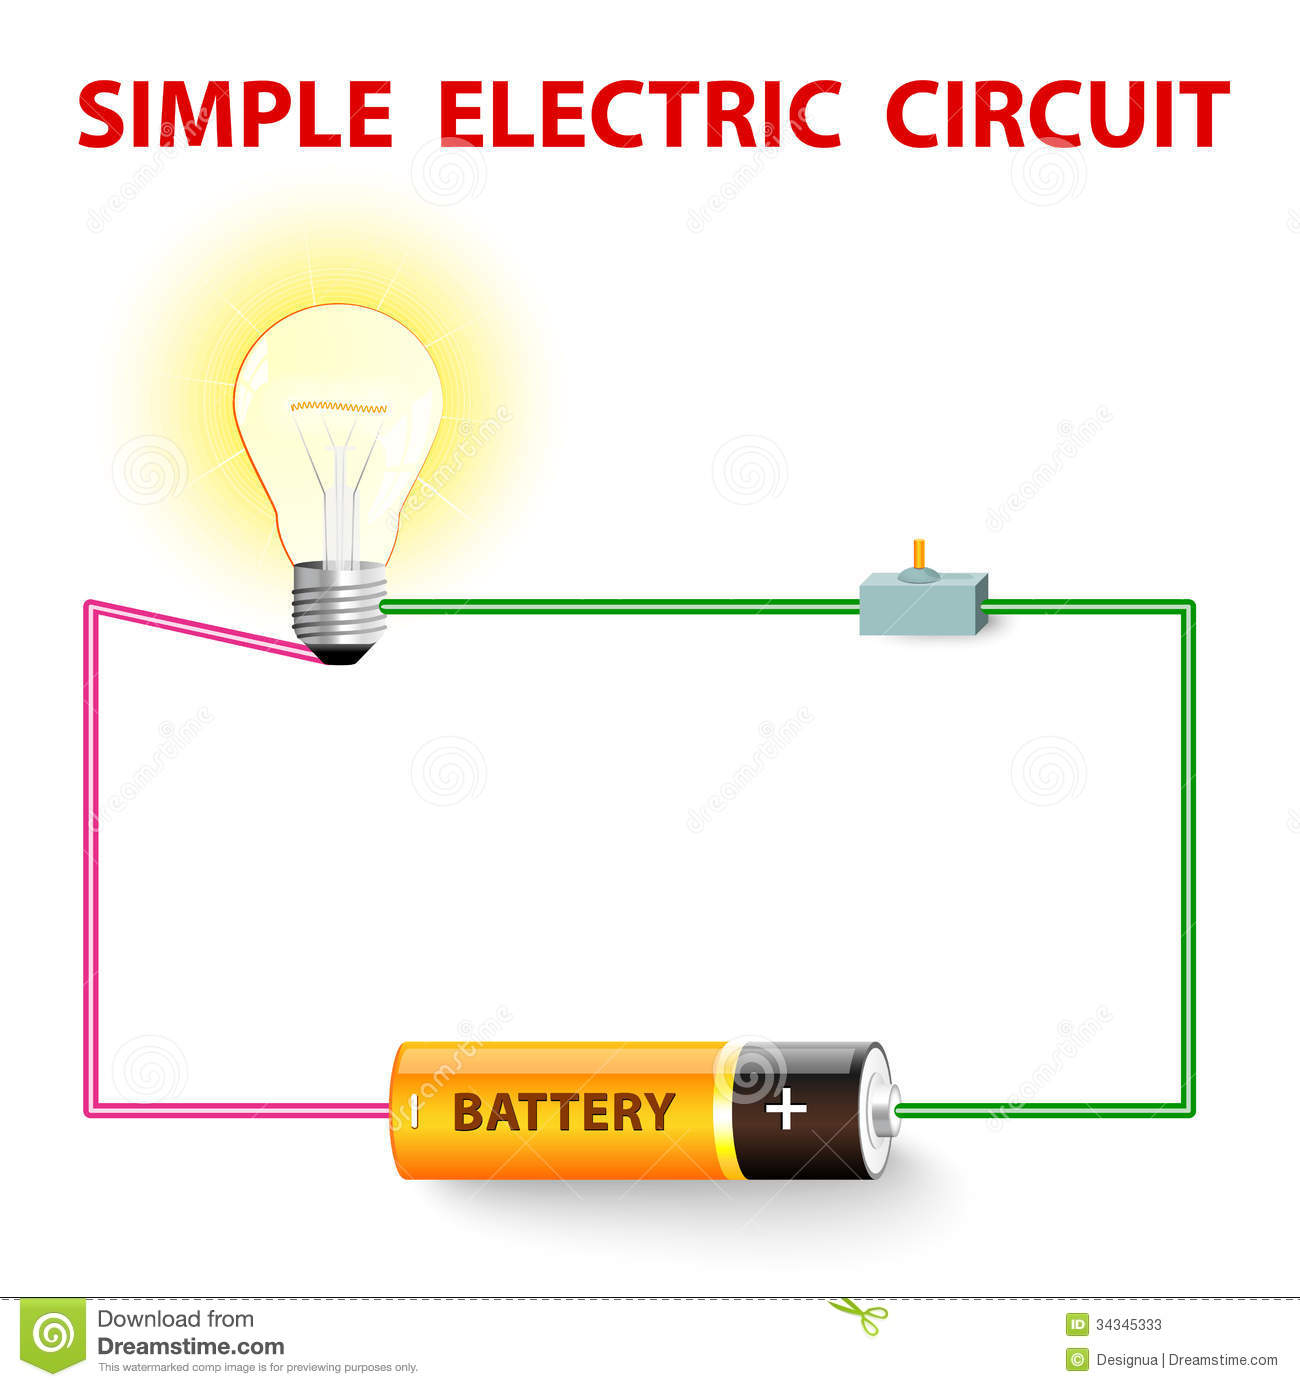 Simple Switch Wiring Diagram Data Kill A Library Electric Circuit